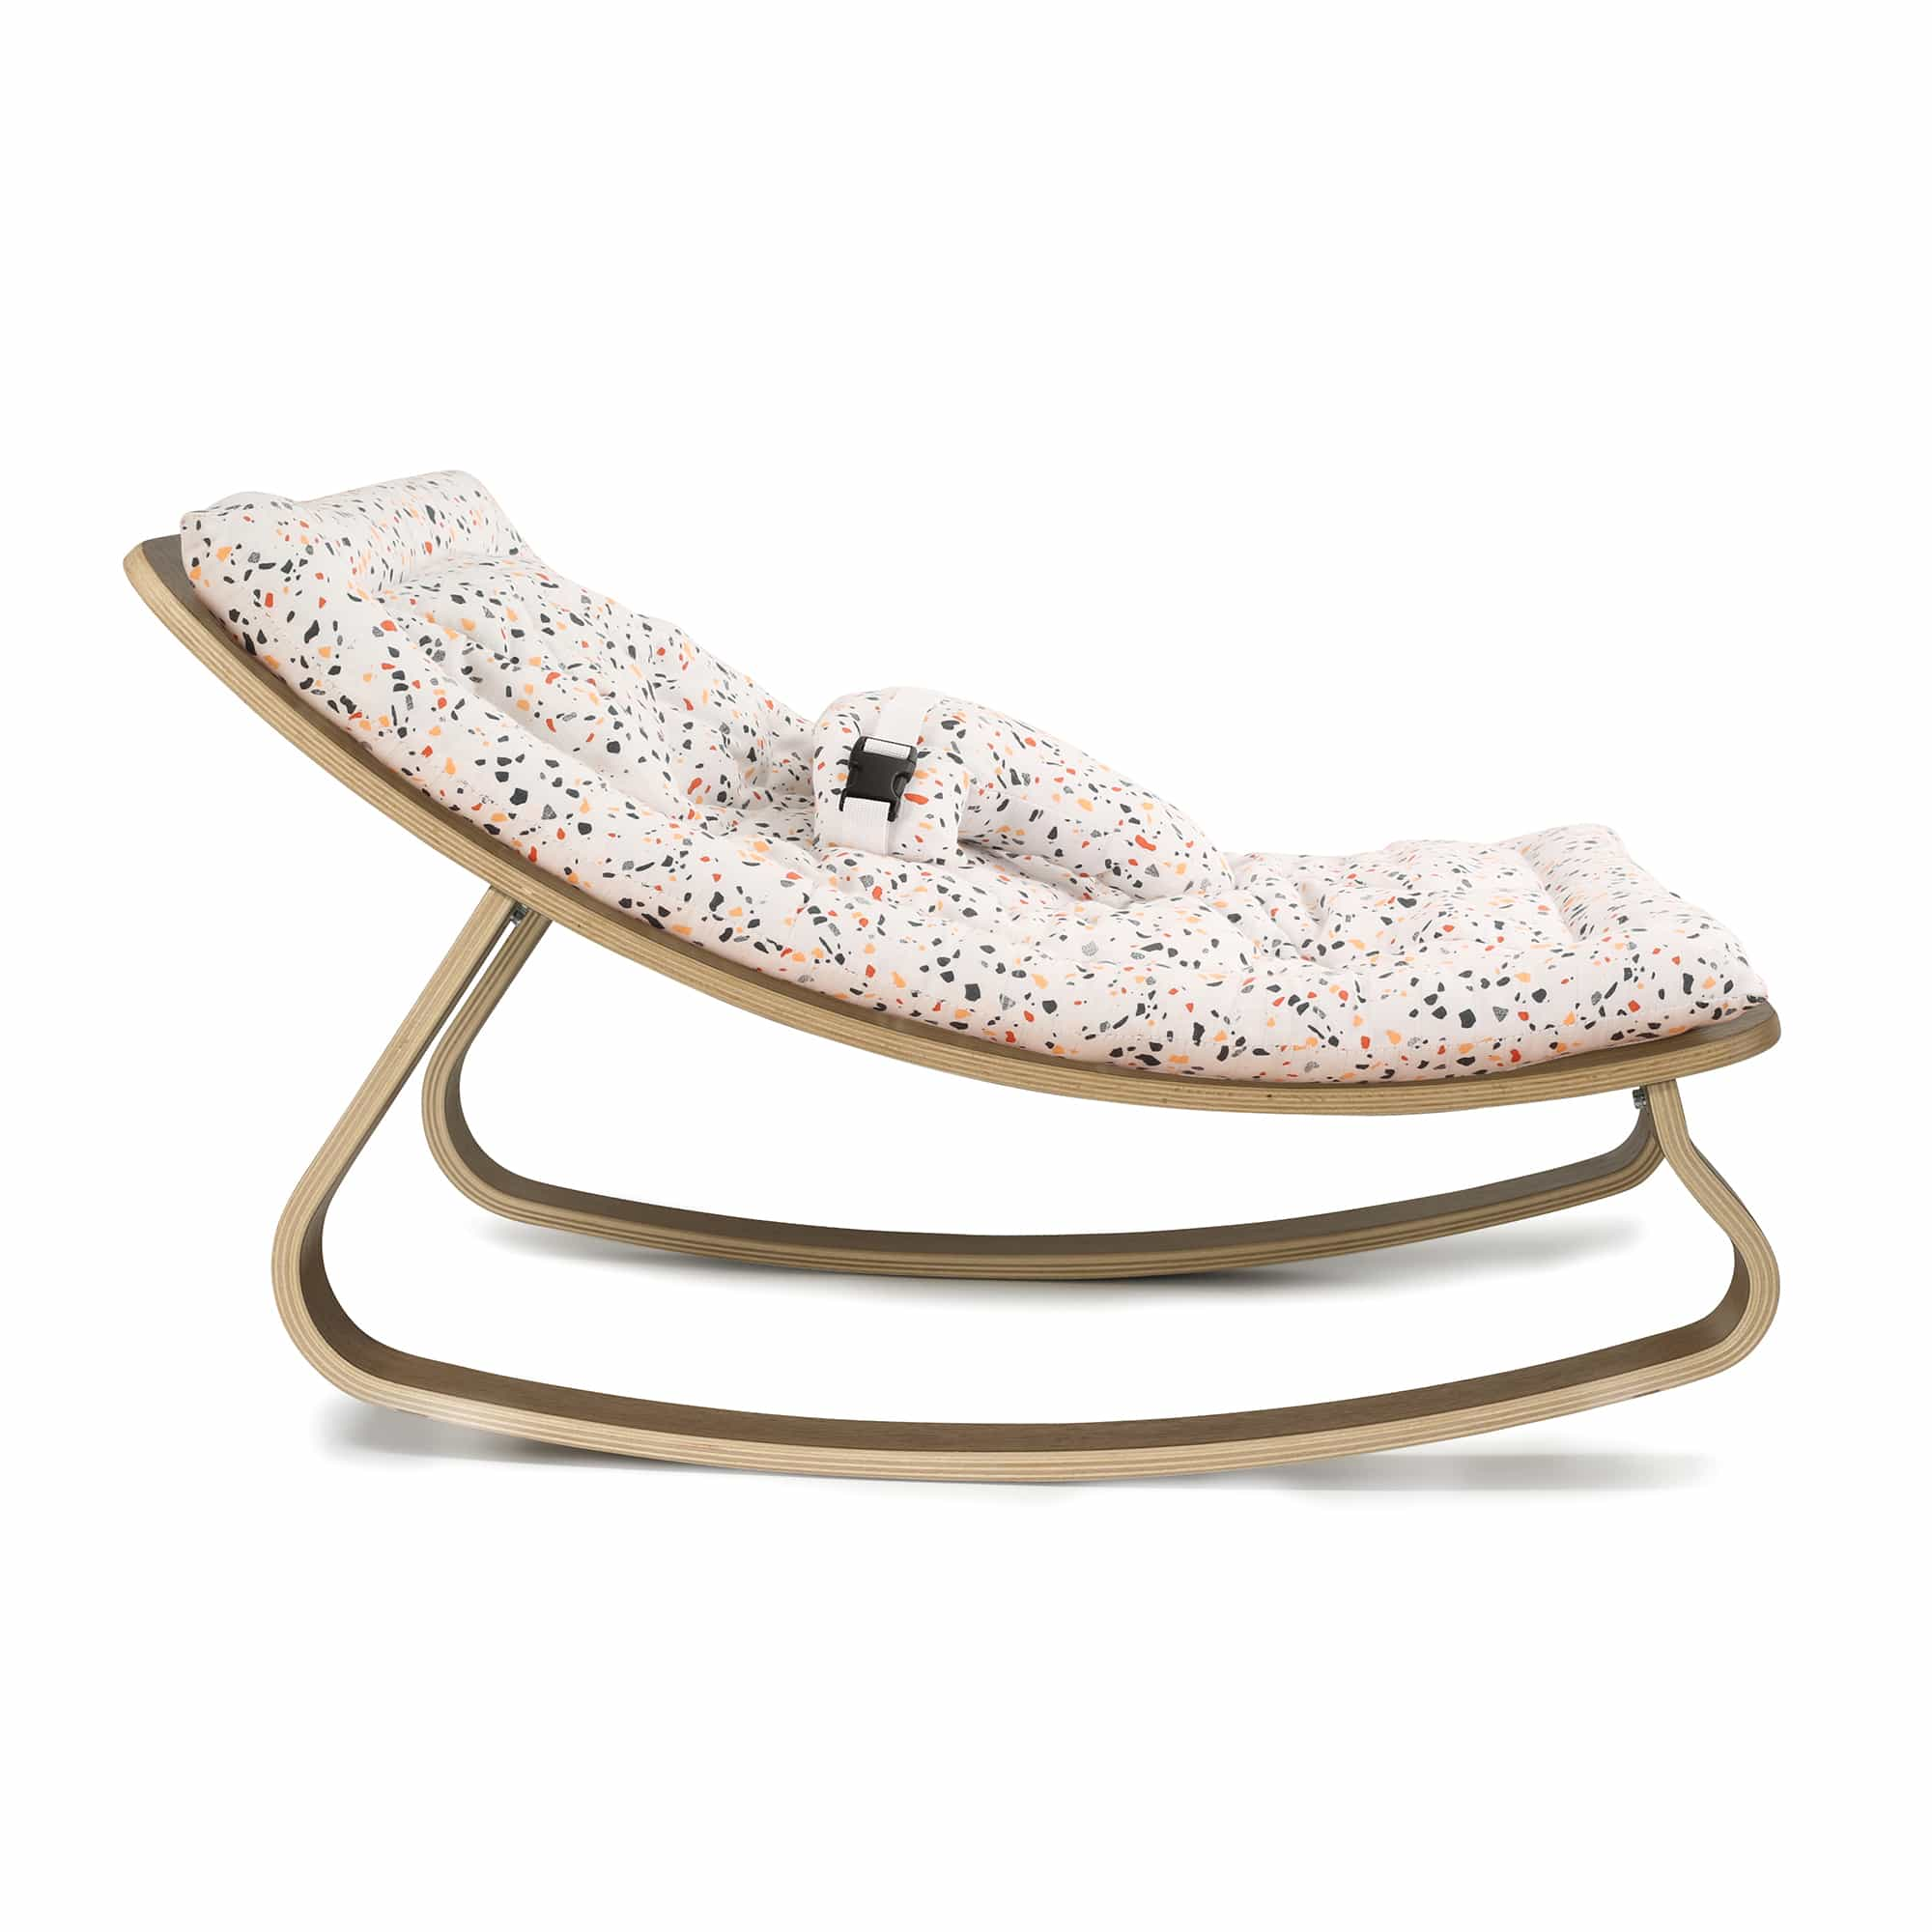 Baby Rocker Levo In Walnut With Milinane Terrazzo